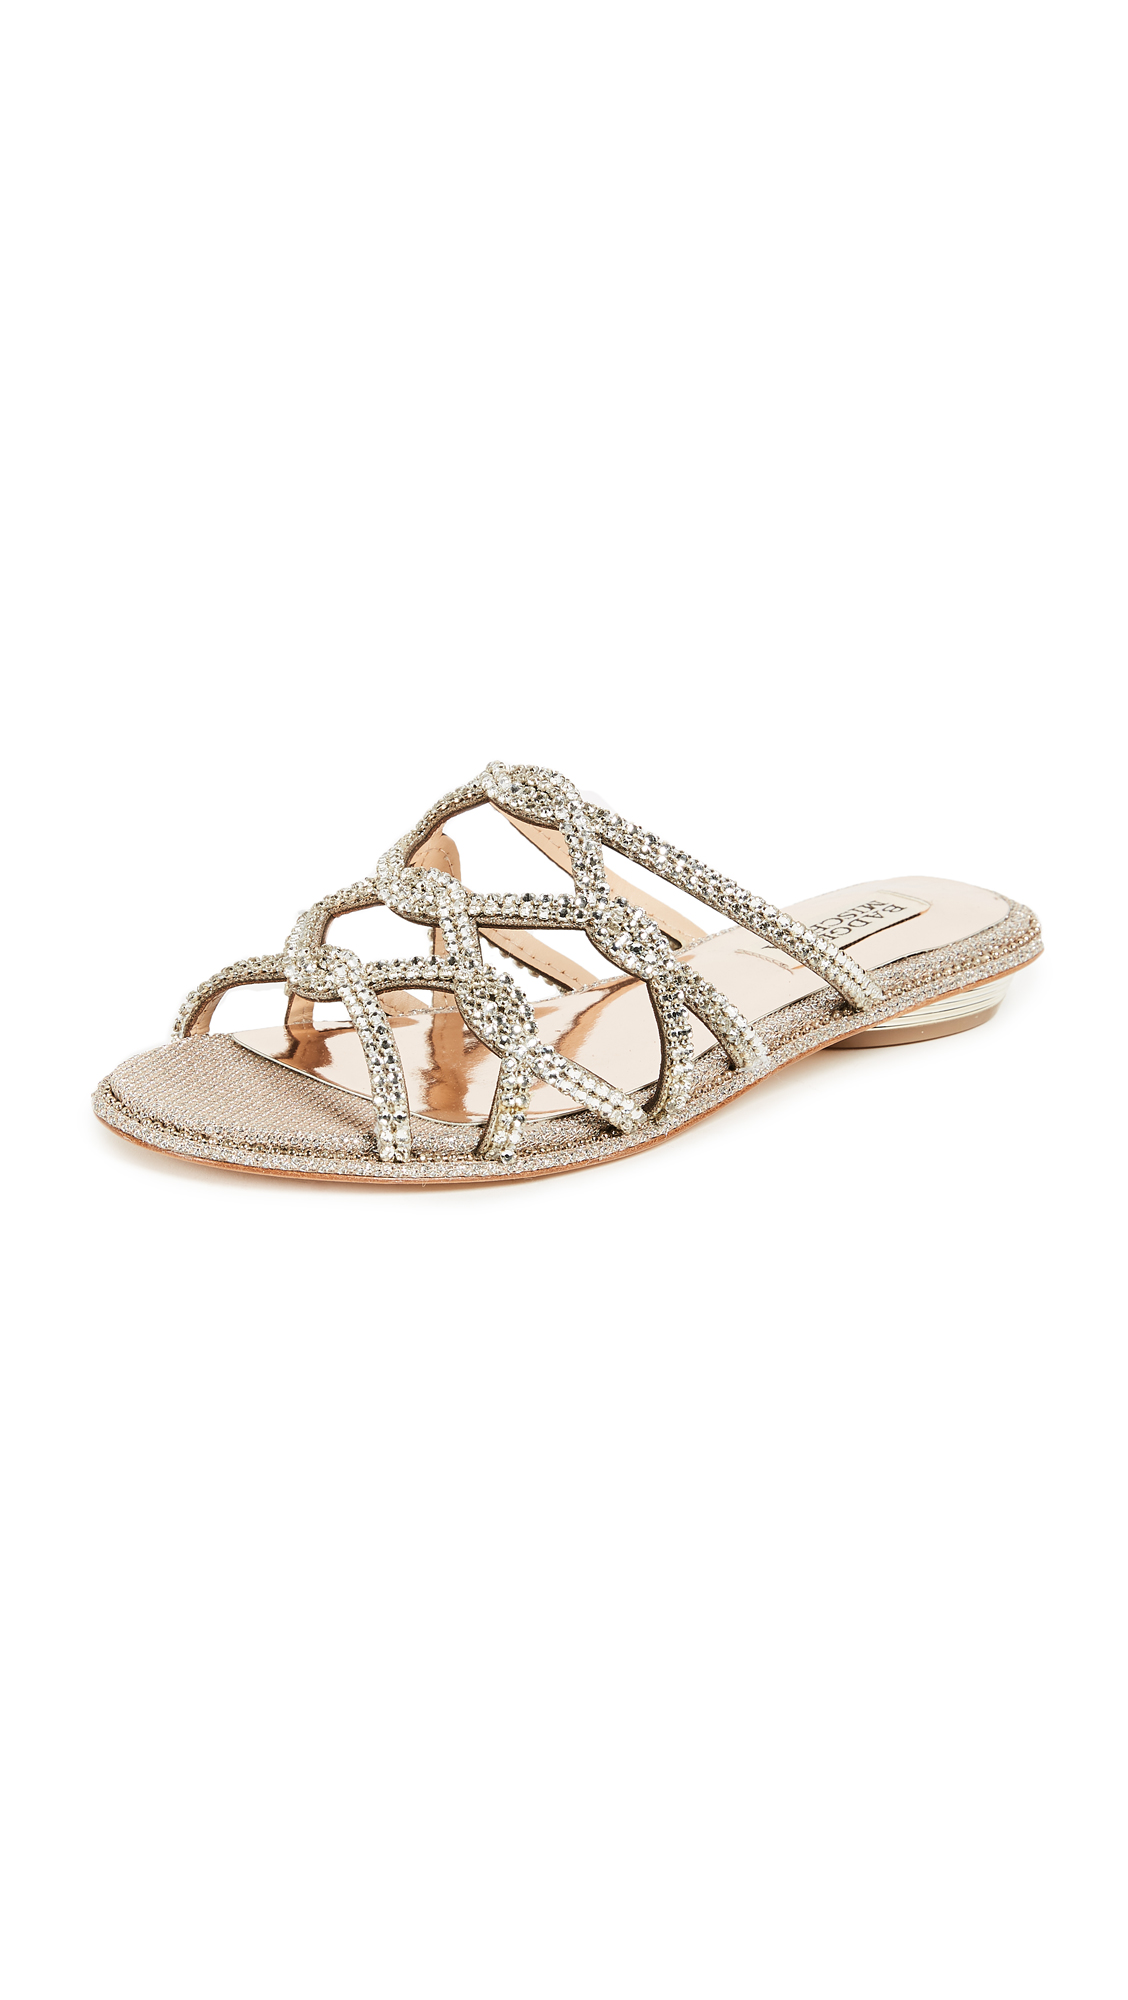 Badgley Mischka Sofie Slides - Platino